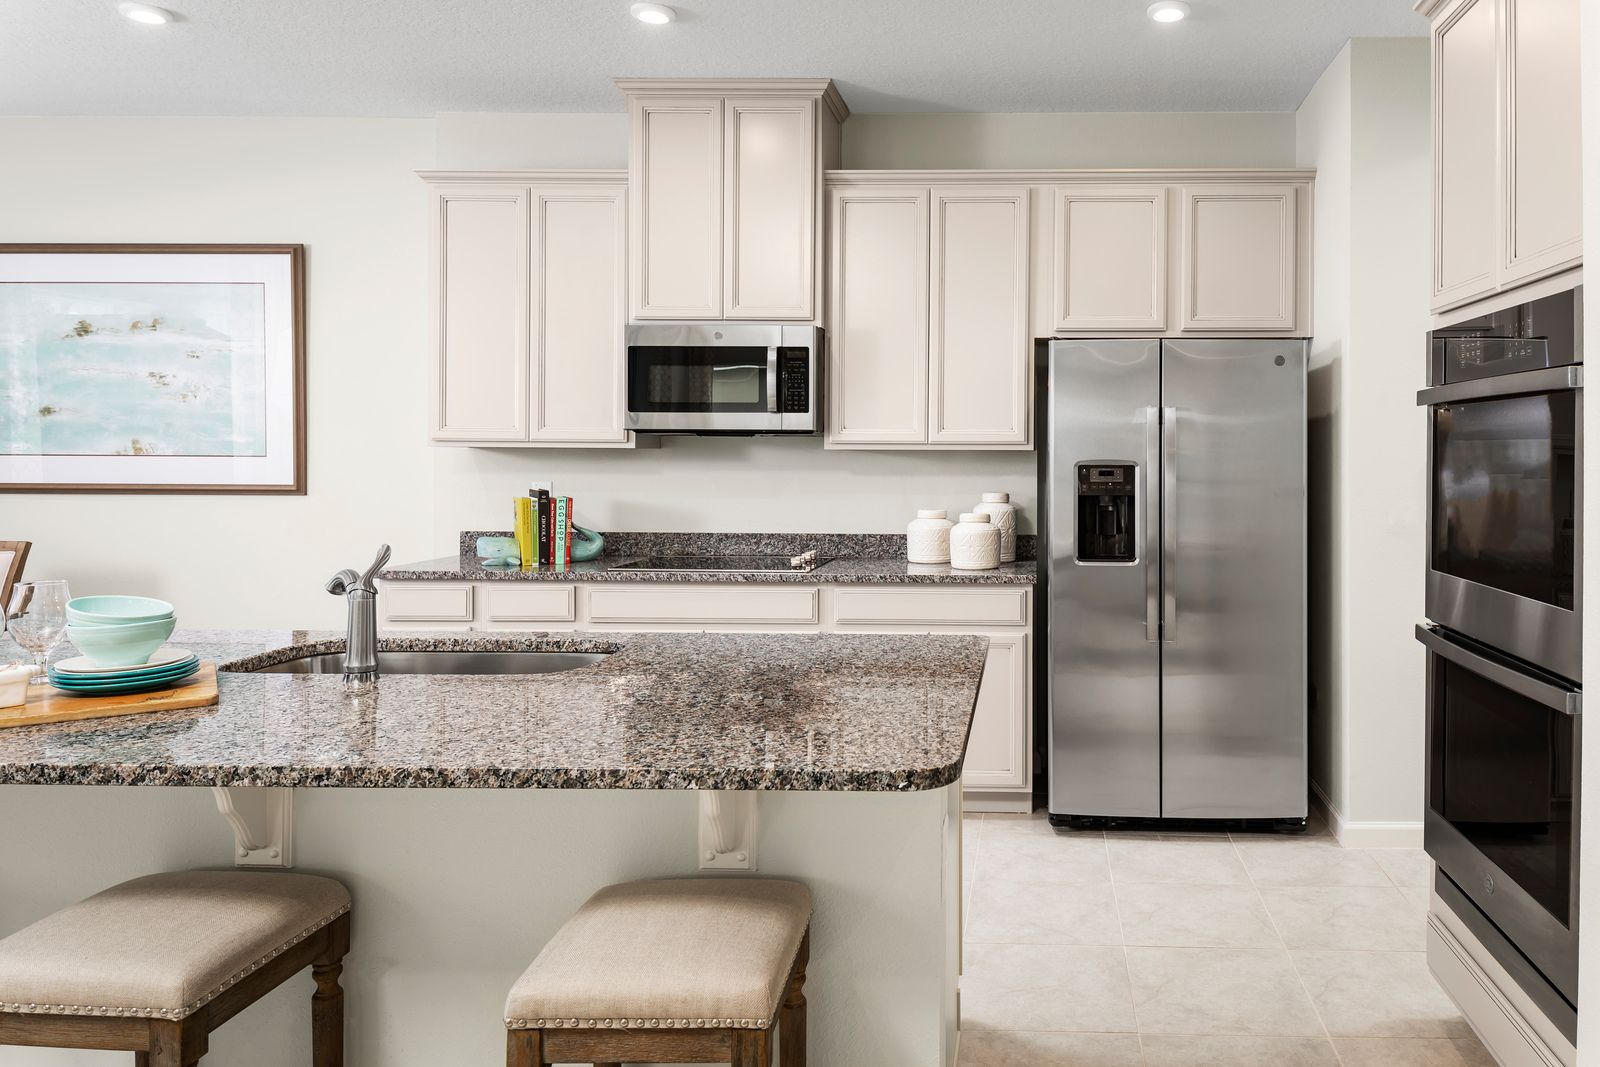 Kitchen featured in the Hillcrest By Ryan Homes in Orlando, FL